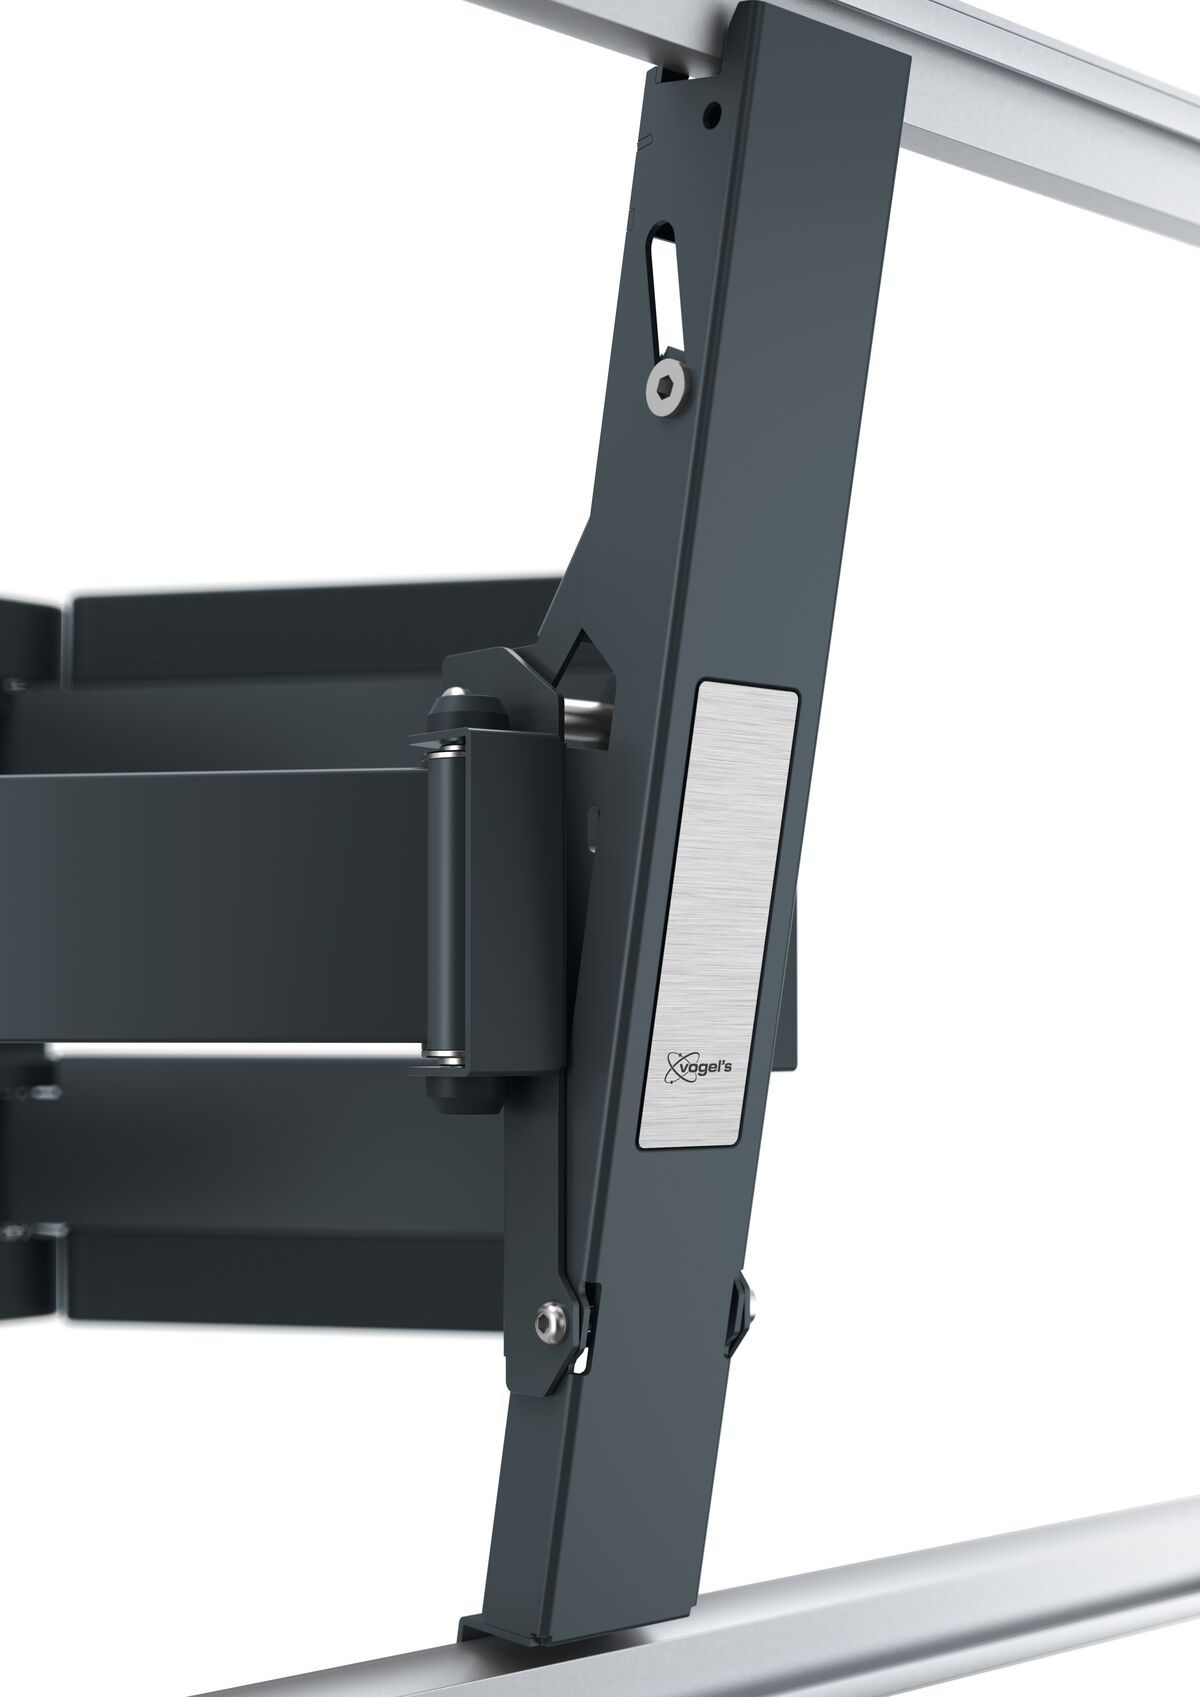 Vogel's THIN 550 ExtraThin Full-Motion TV Wall Mount - Suitable for 40 up to 100 inch TVs - Forward and turning motion (up to 120°) - Tilt up to 20° - Detail